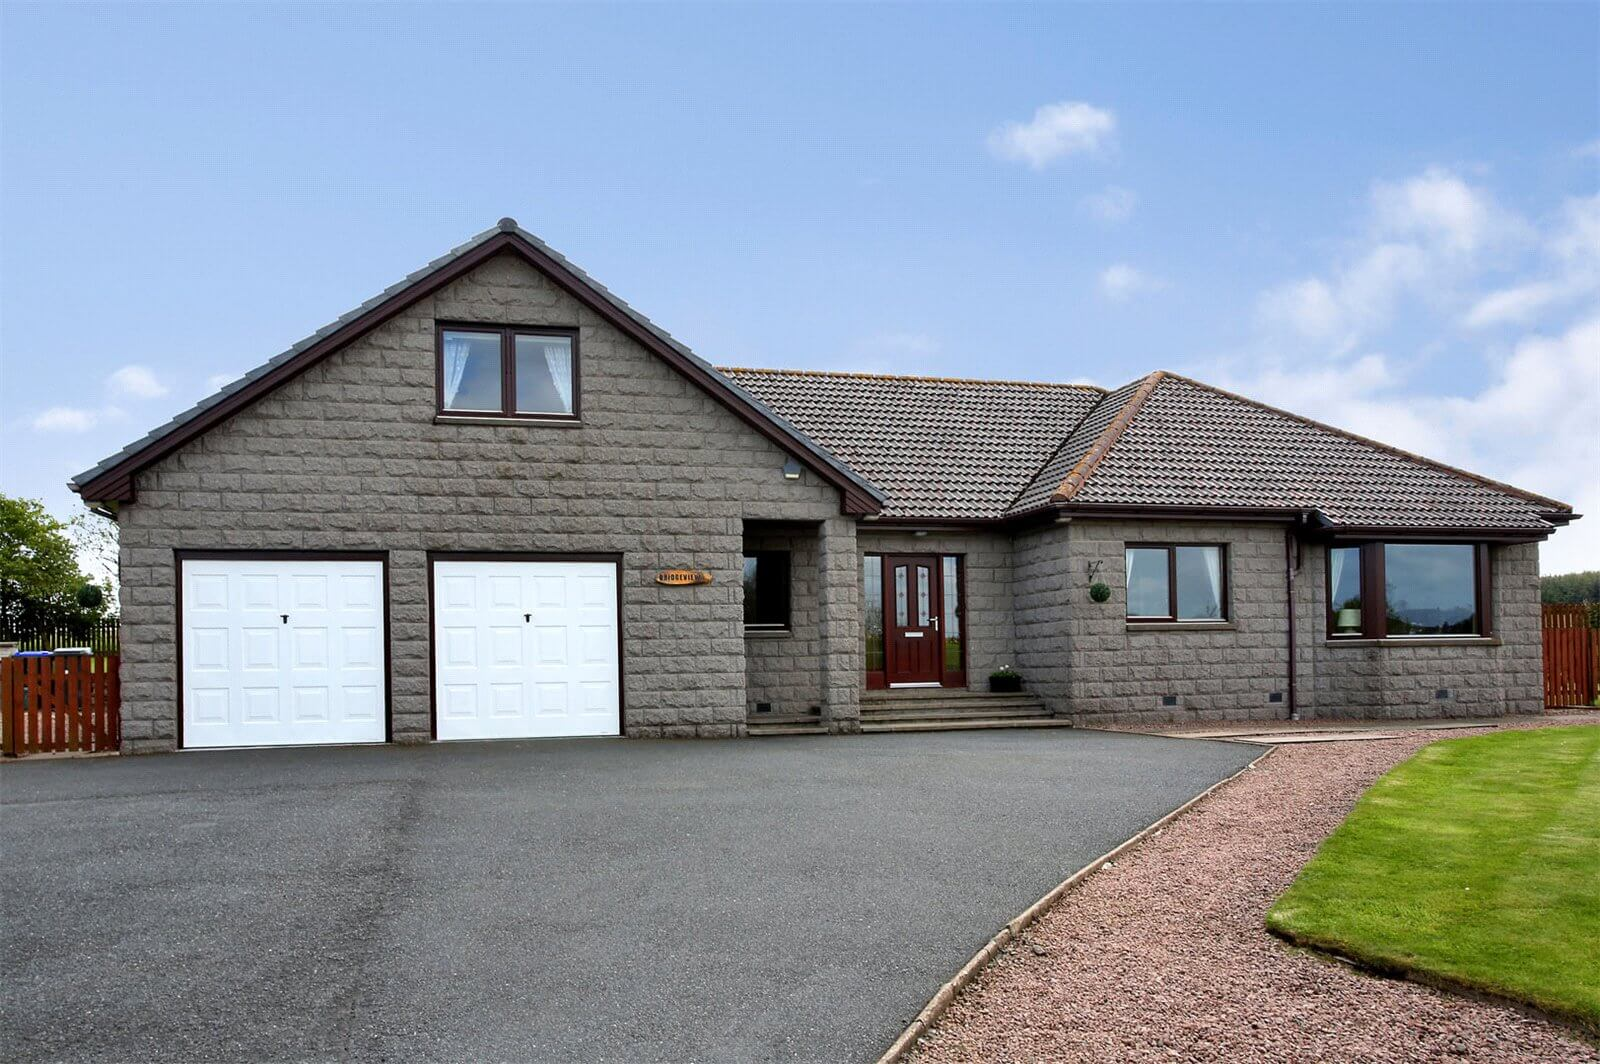 Our latest properties for sale and to let (13th June 2019)